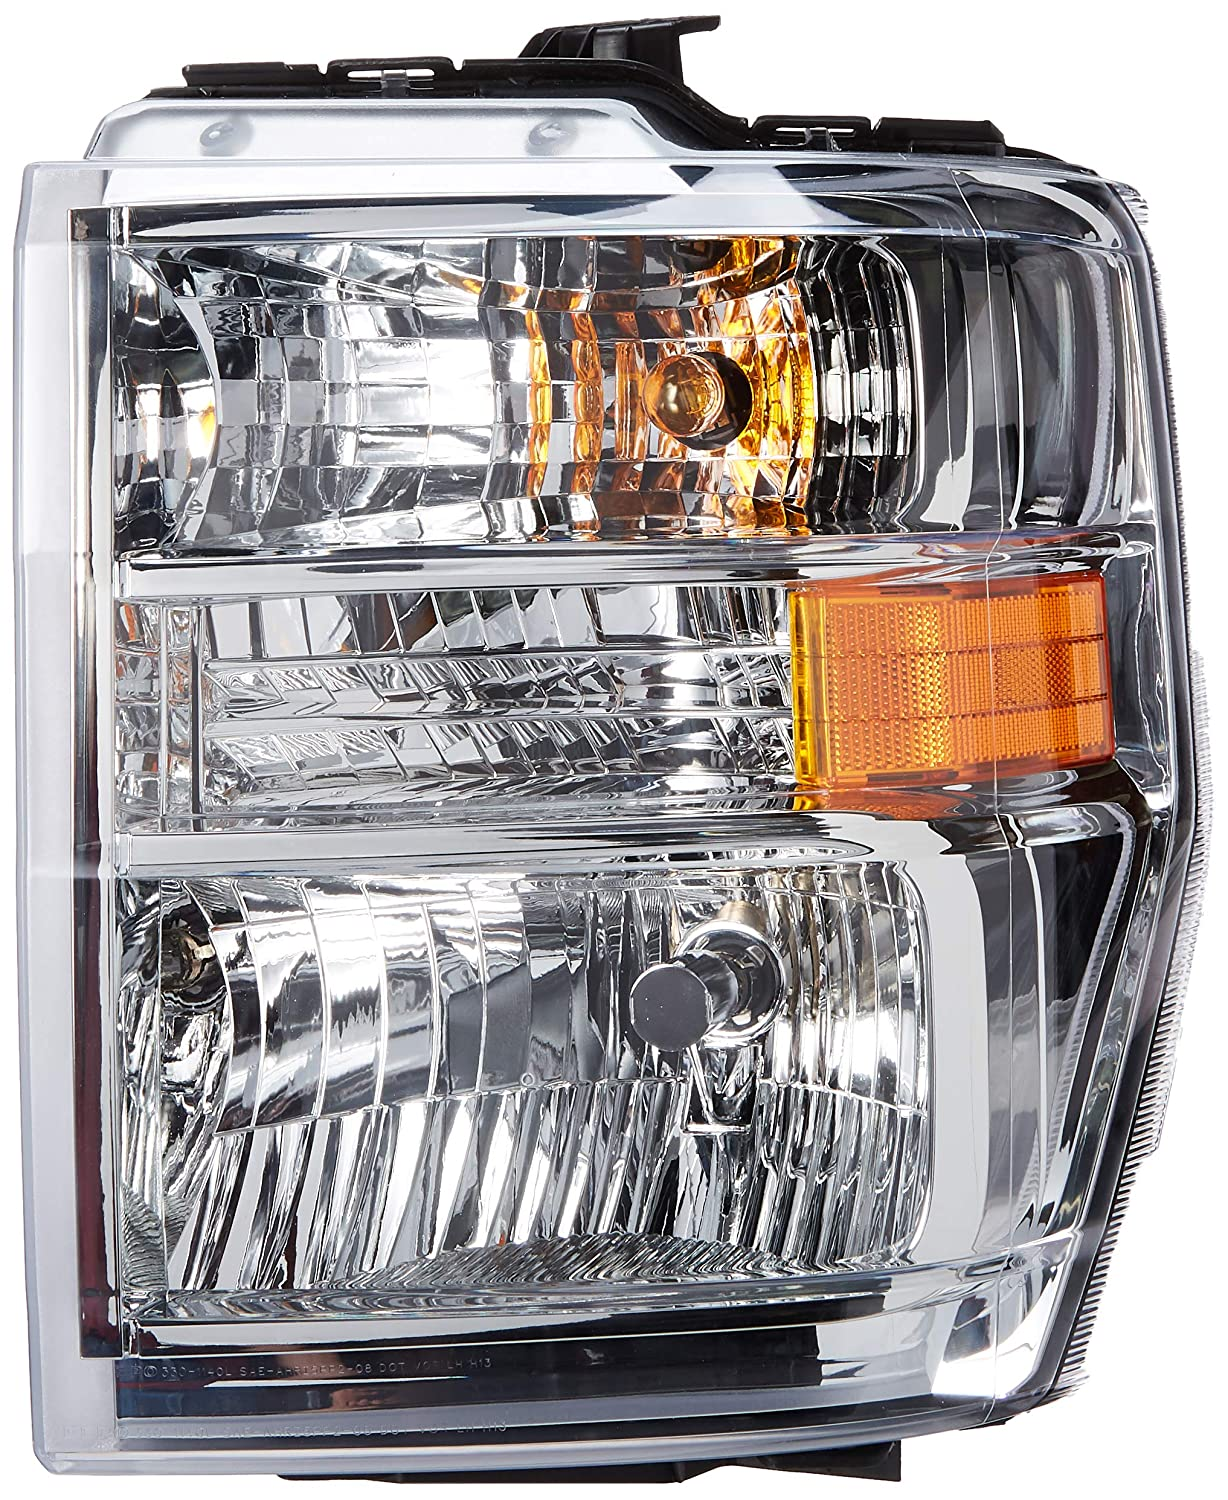 Partslink FO2502249 OE Replacement Headlight Combination Assembly FORD VAN FORD ECONOLINE 2008-2014